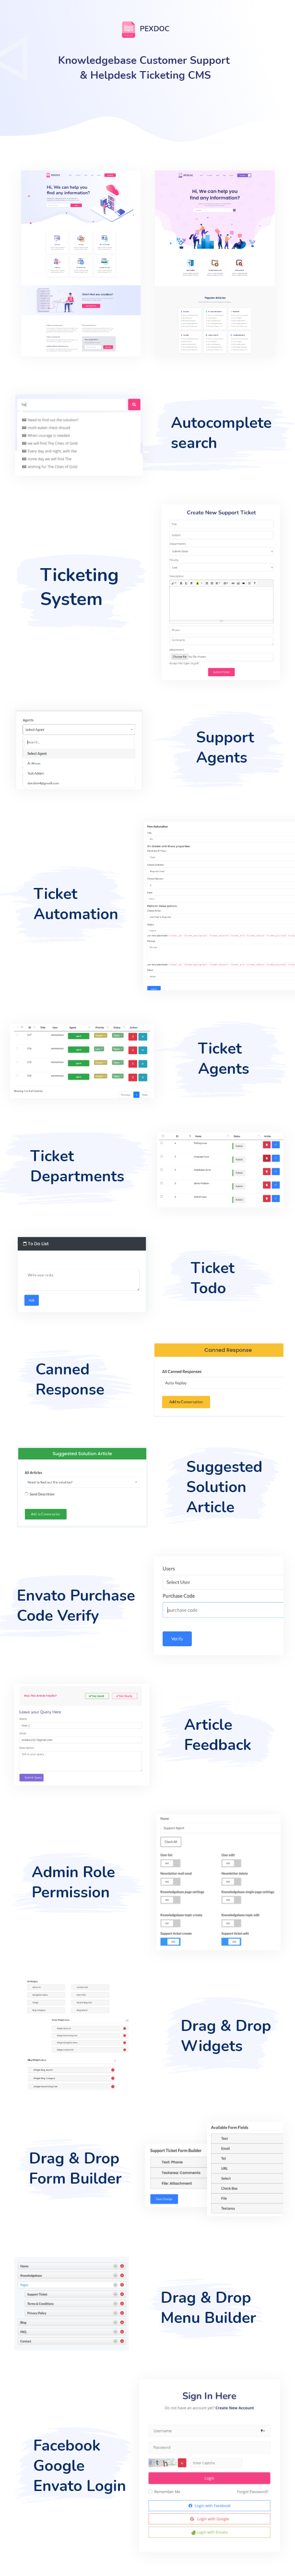 Pexdoc - Knowledgebase Customer Support & Helpdesk Ticketing CMS